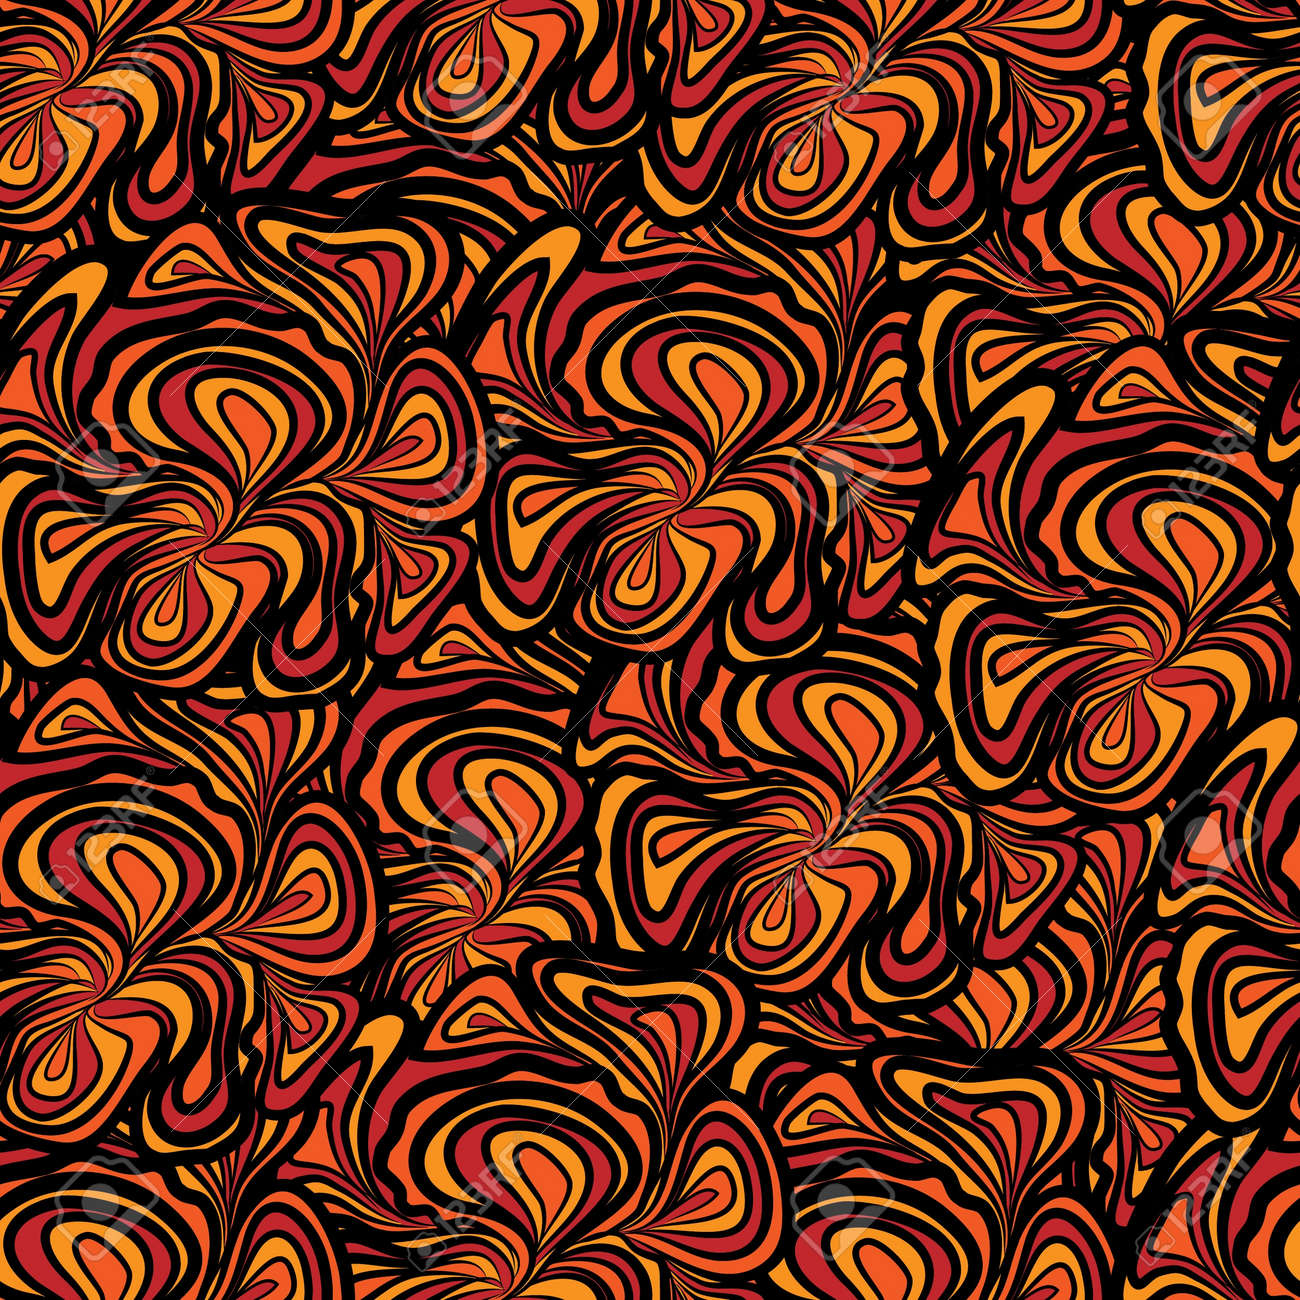 Abstract Seamless Pattern With Orange Black Floral Design Pattern